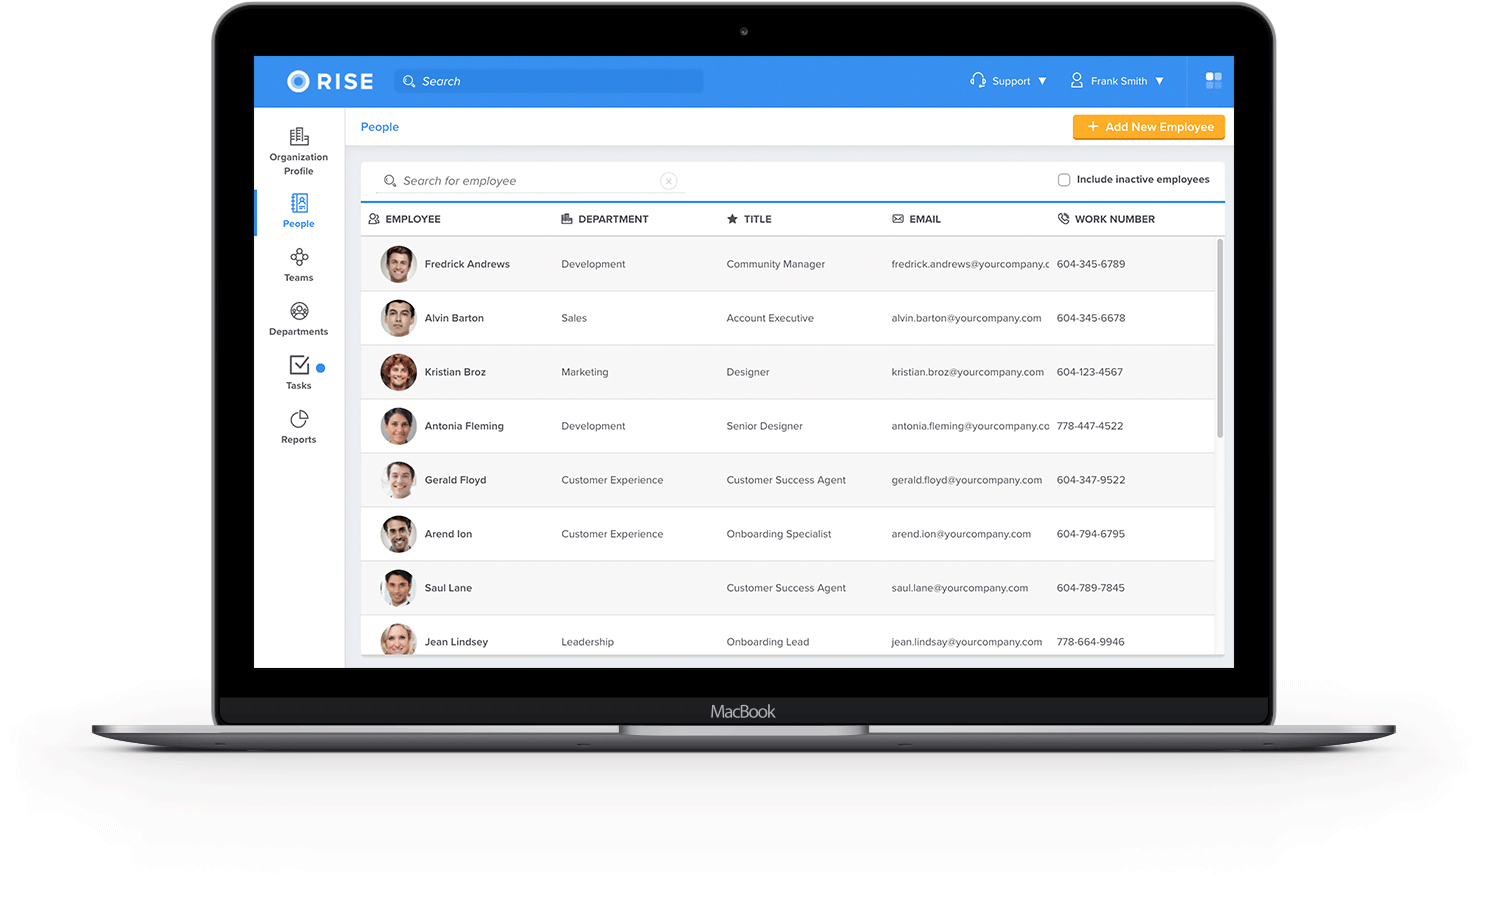 Employee data at your fingertips